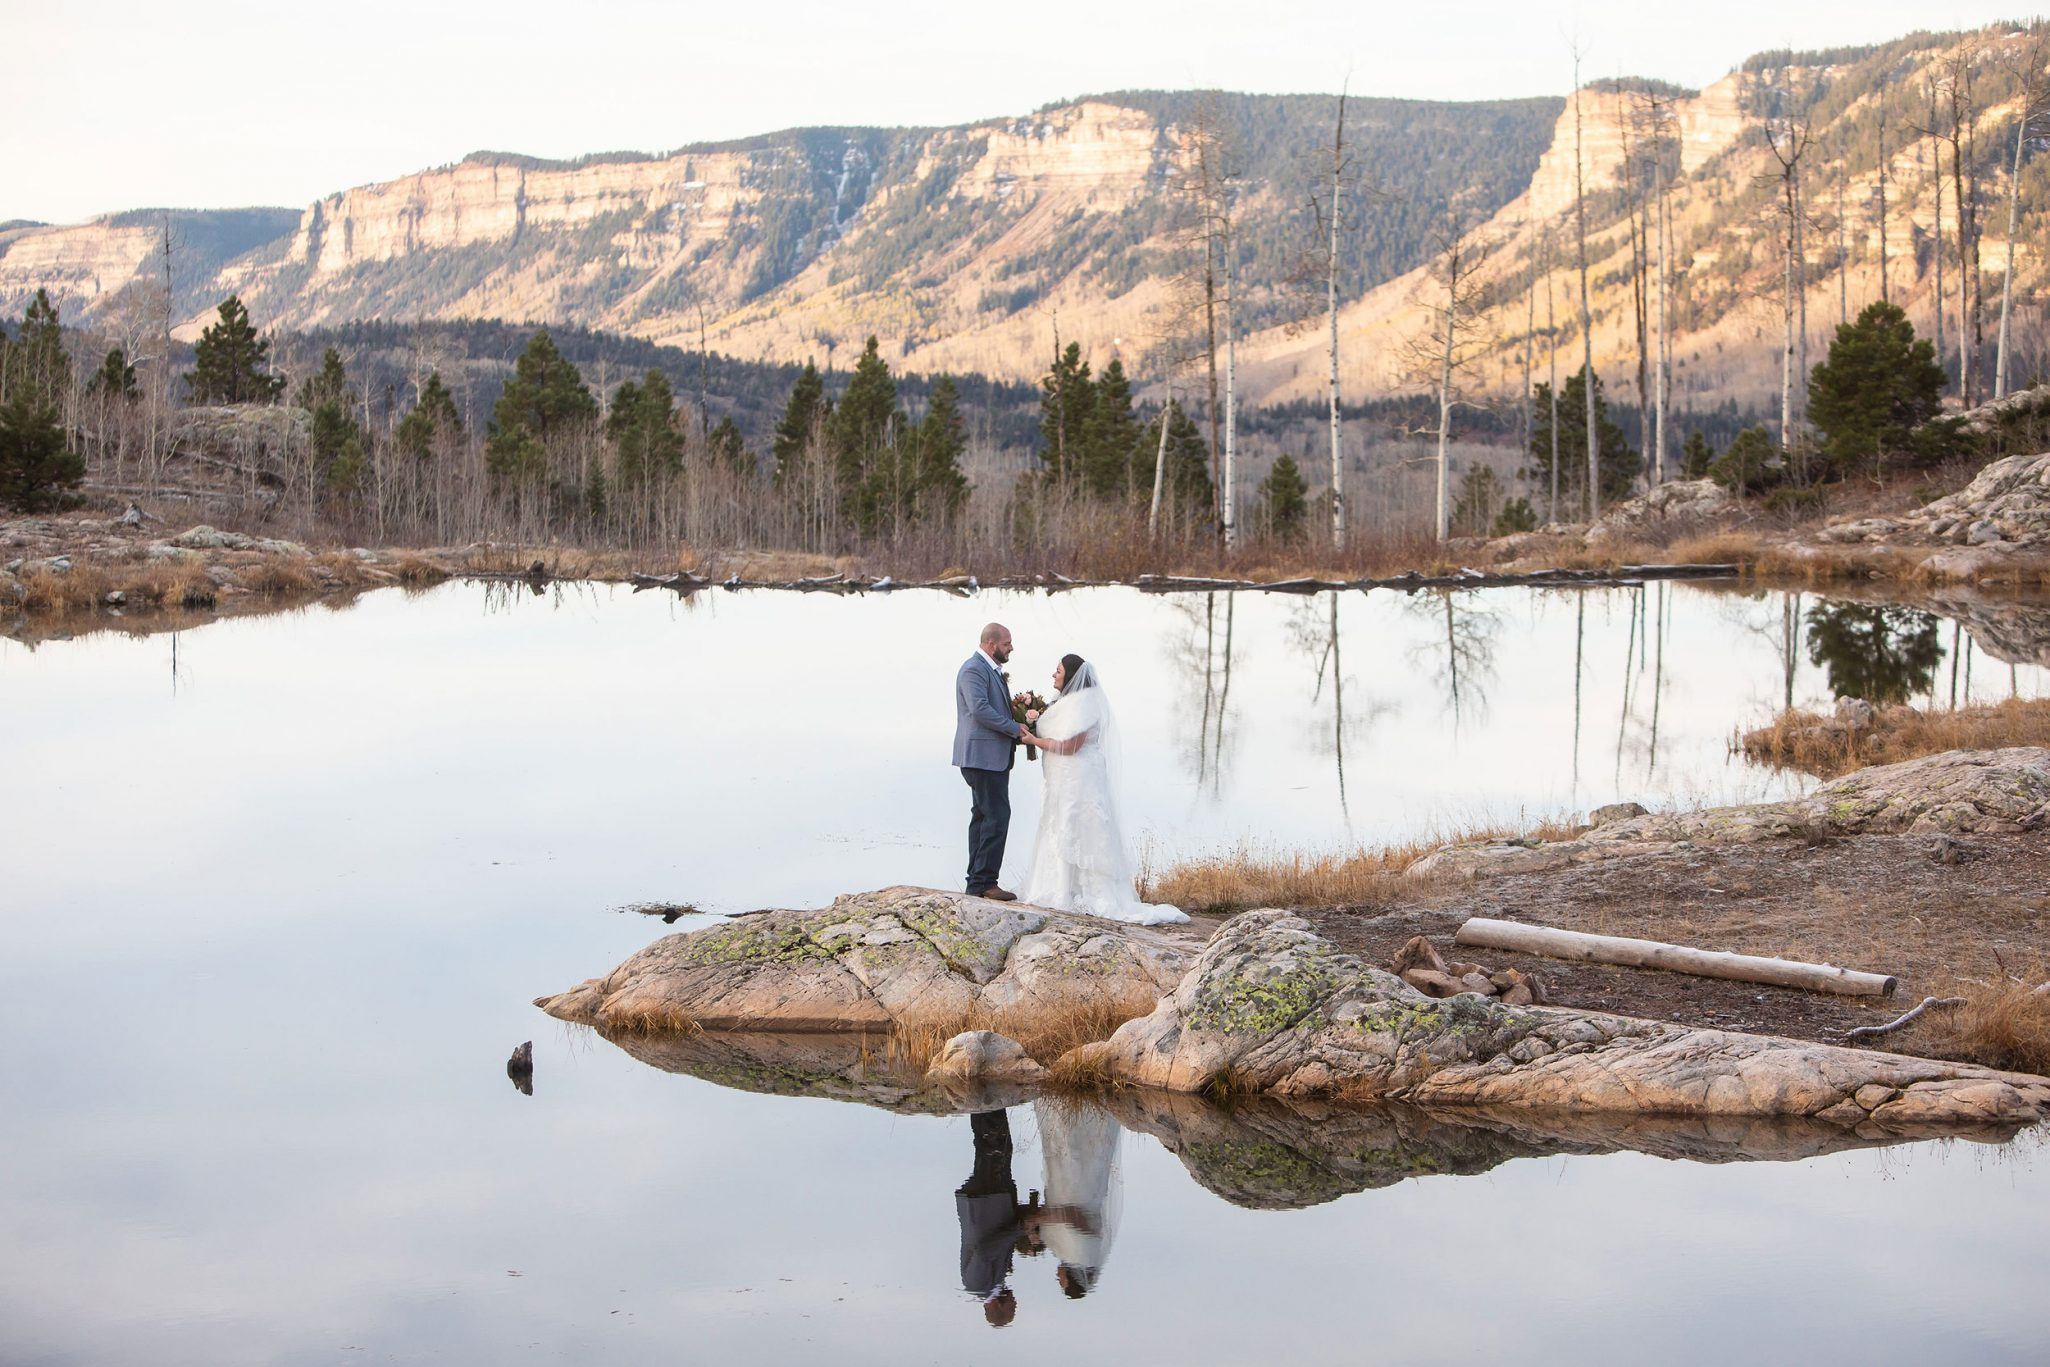 Ceremony | A Durango Elopement in the Mountains